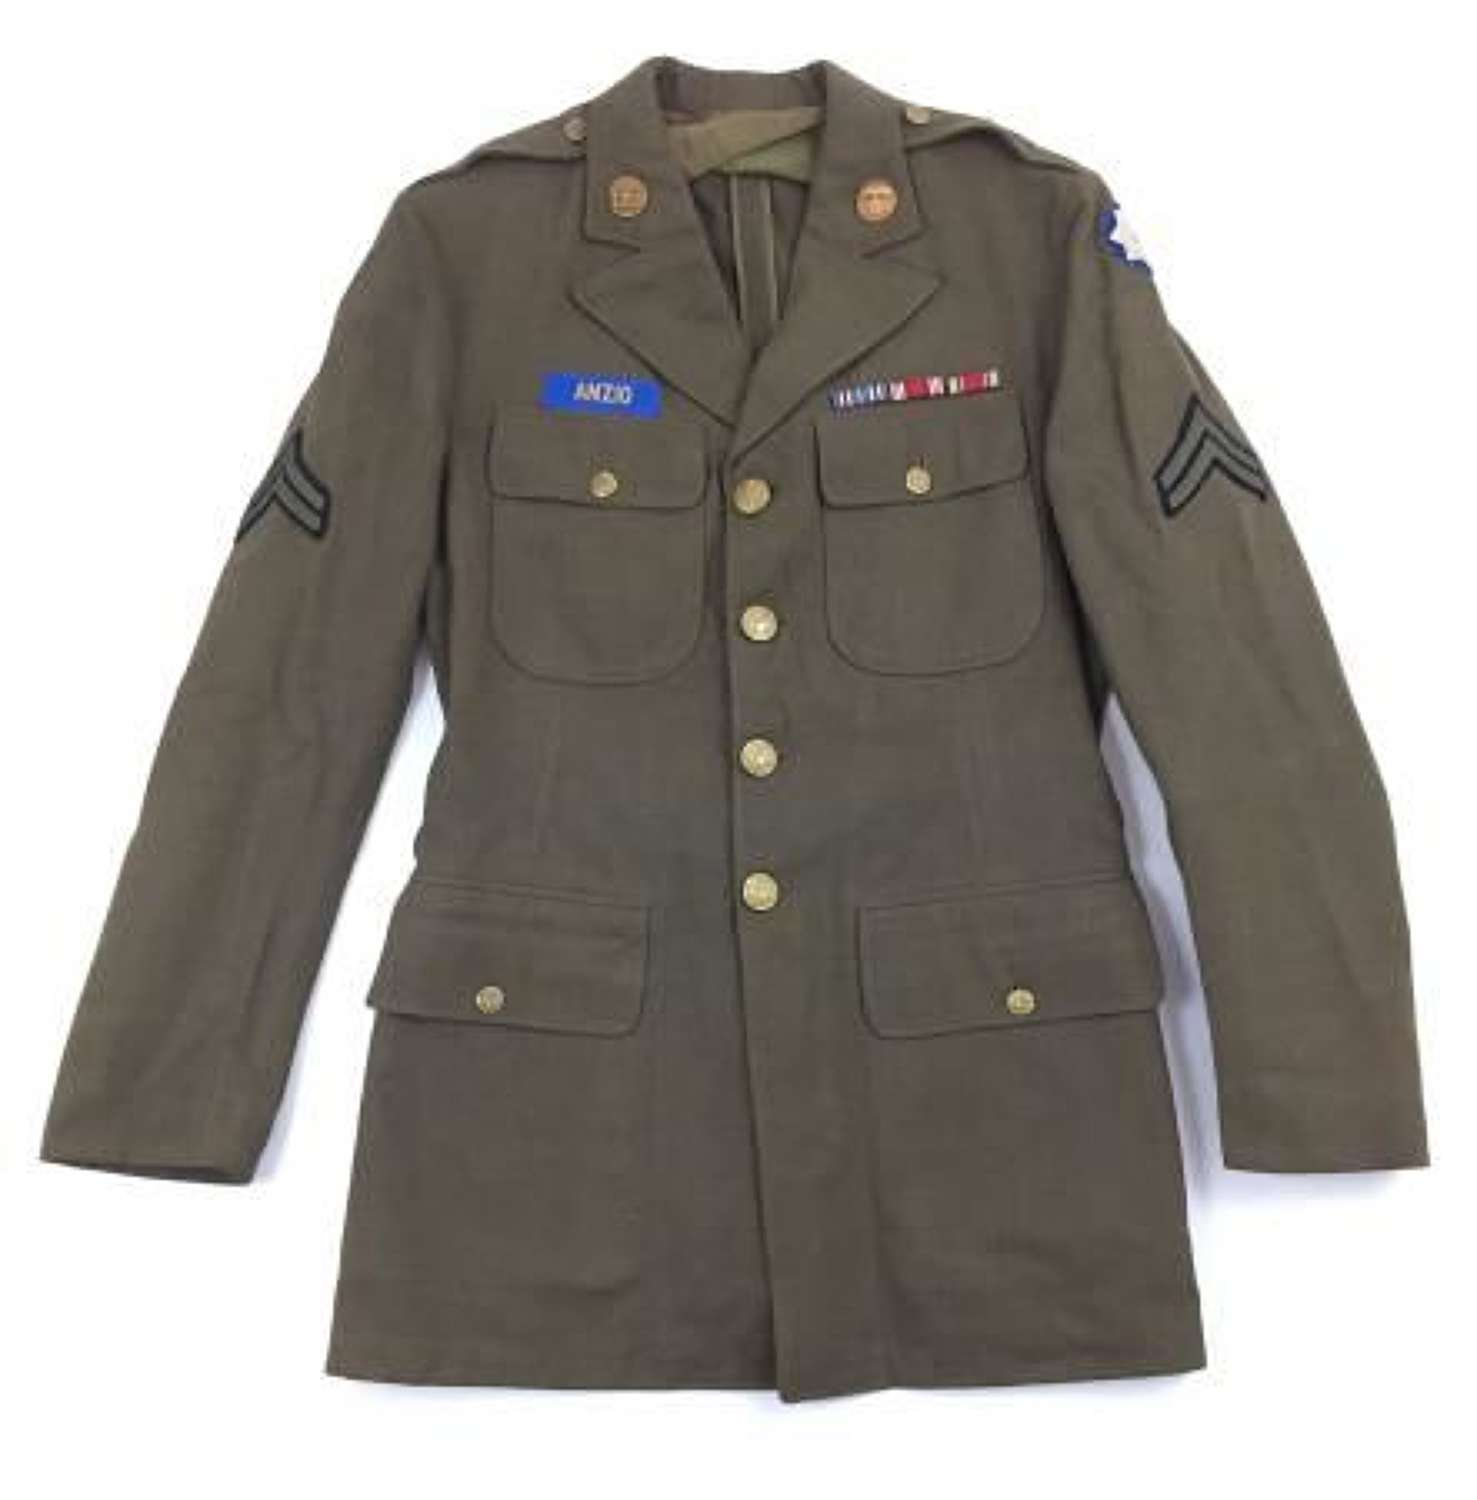 Original 1941 Dated US Army EM Tunic - 9th Service Command